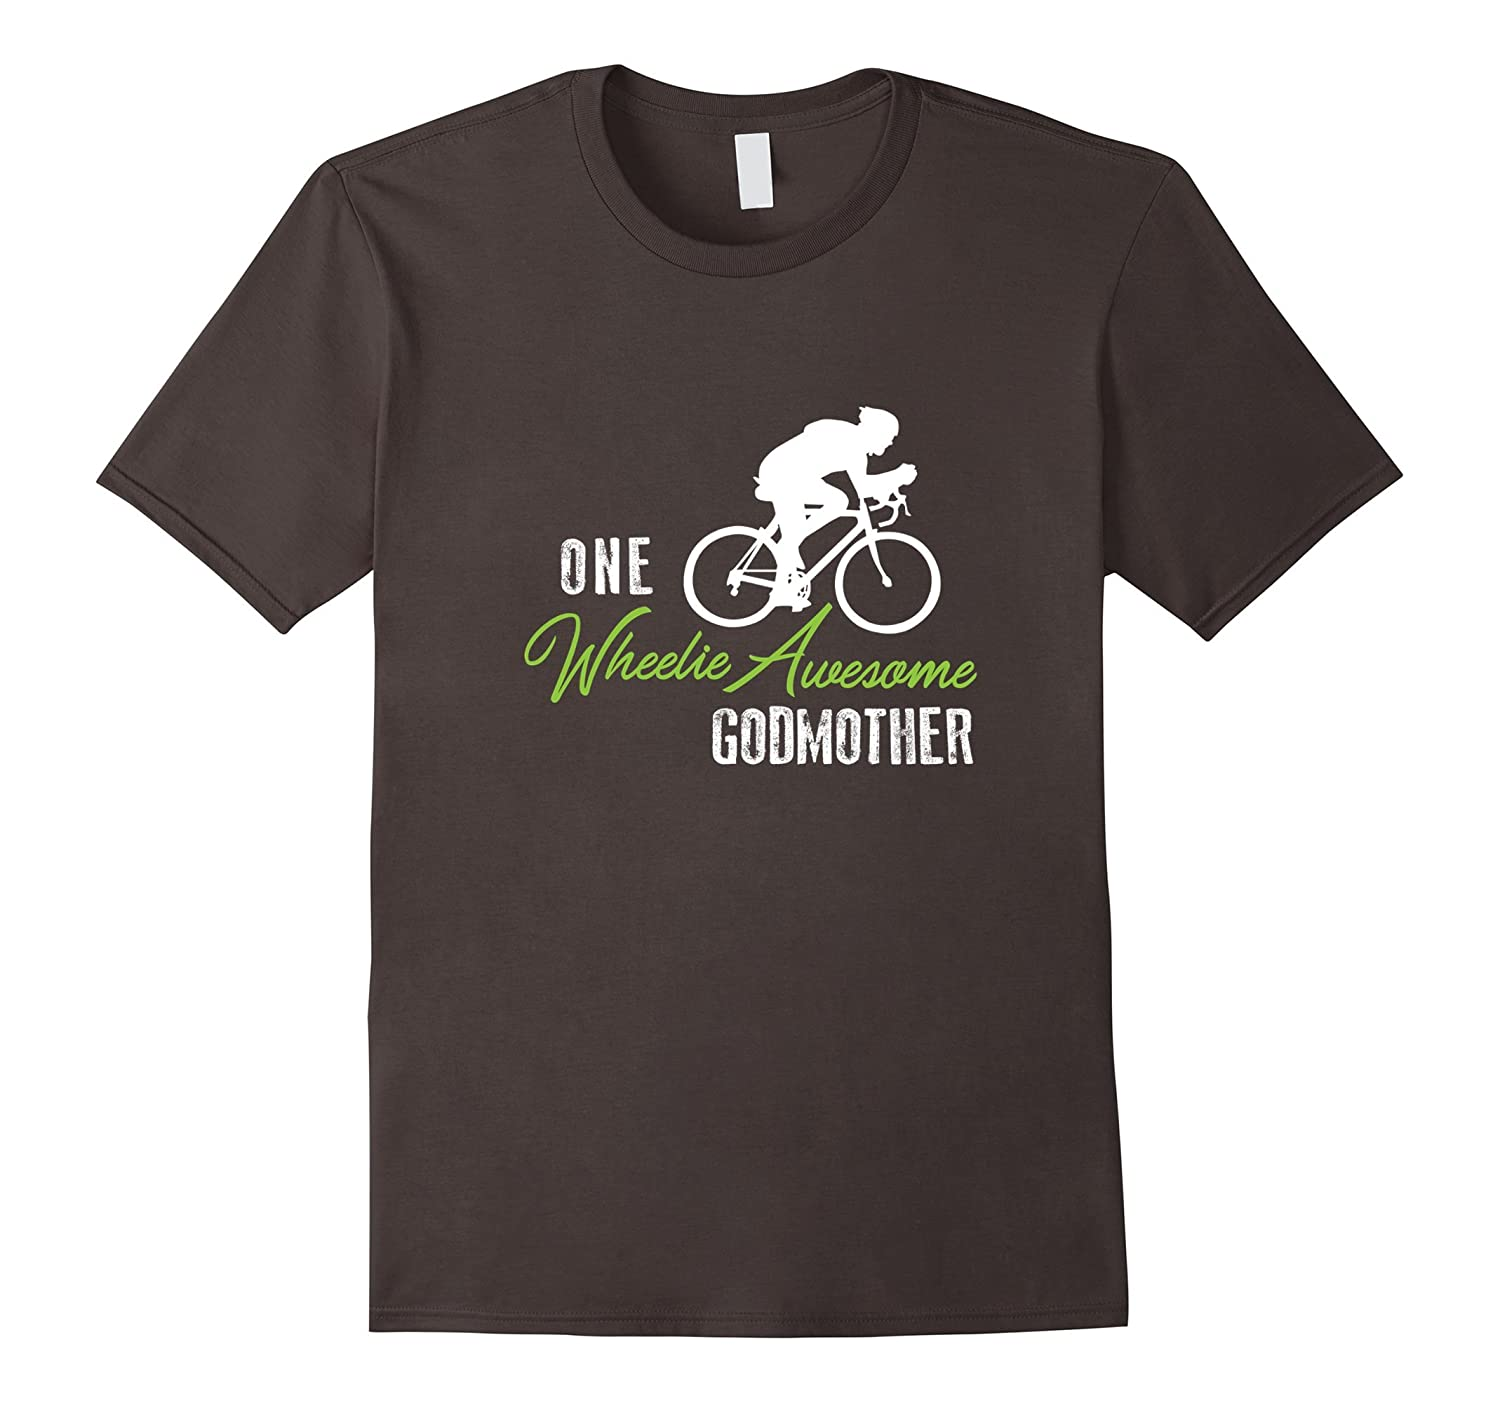 Wheelie Awesome Godmother Shirt, Funny Bike Cute Cycling